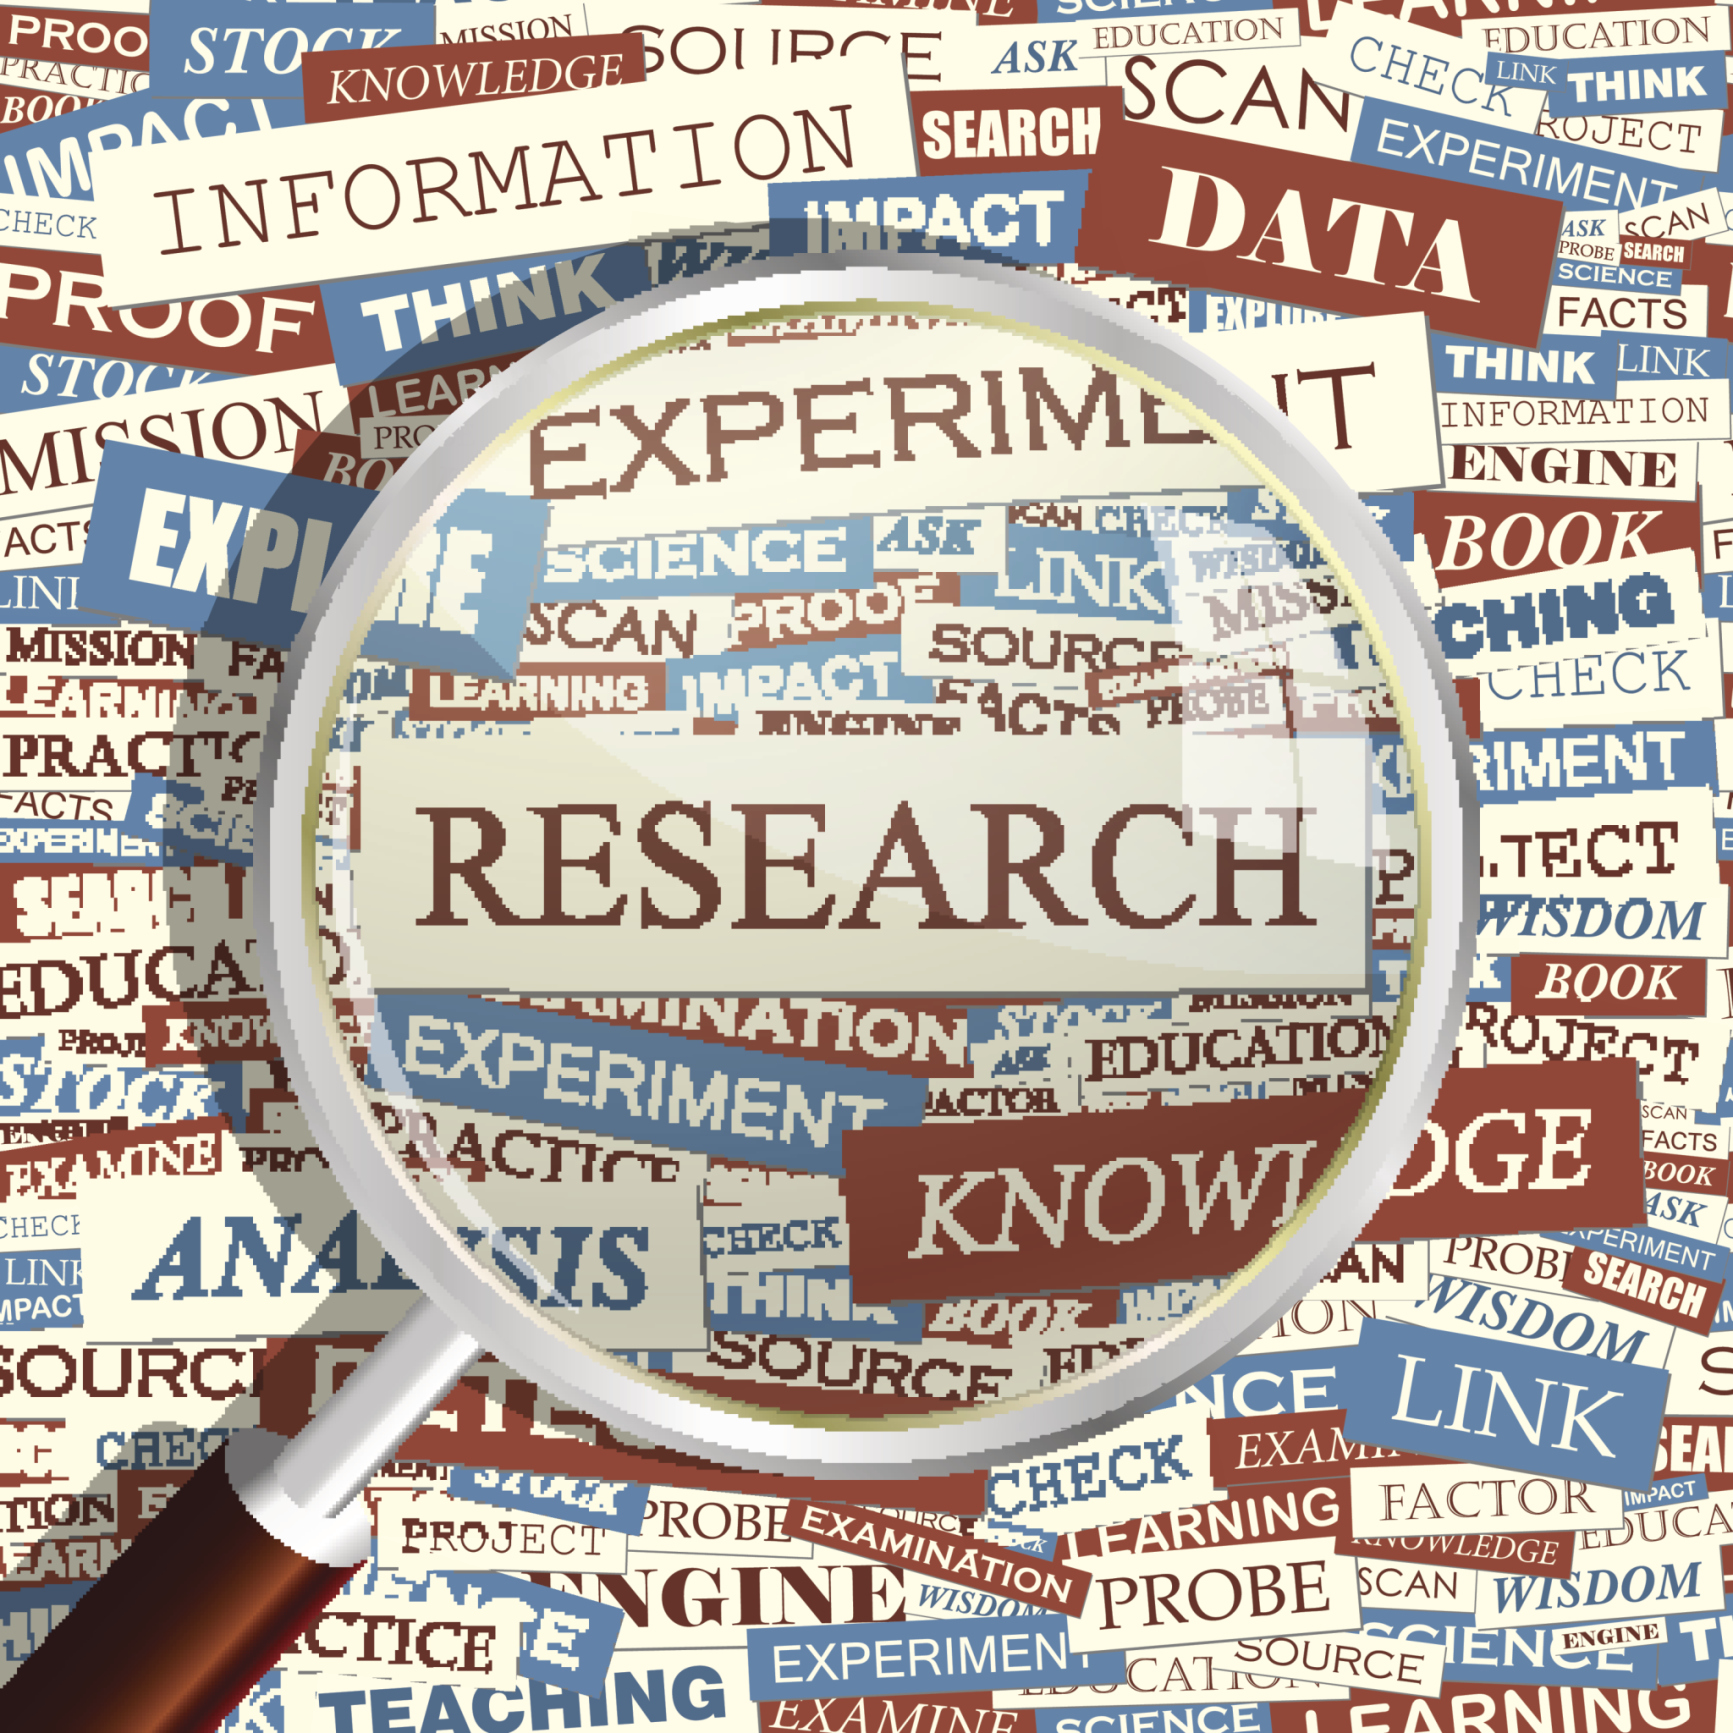 004 Research Papers Online Paper Singular Find Free On Food Ordering System Grocery Shopping In India Full